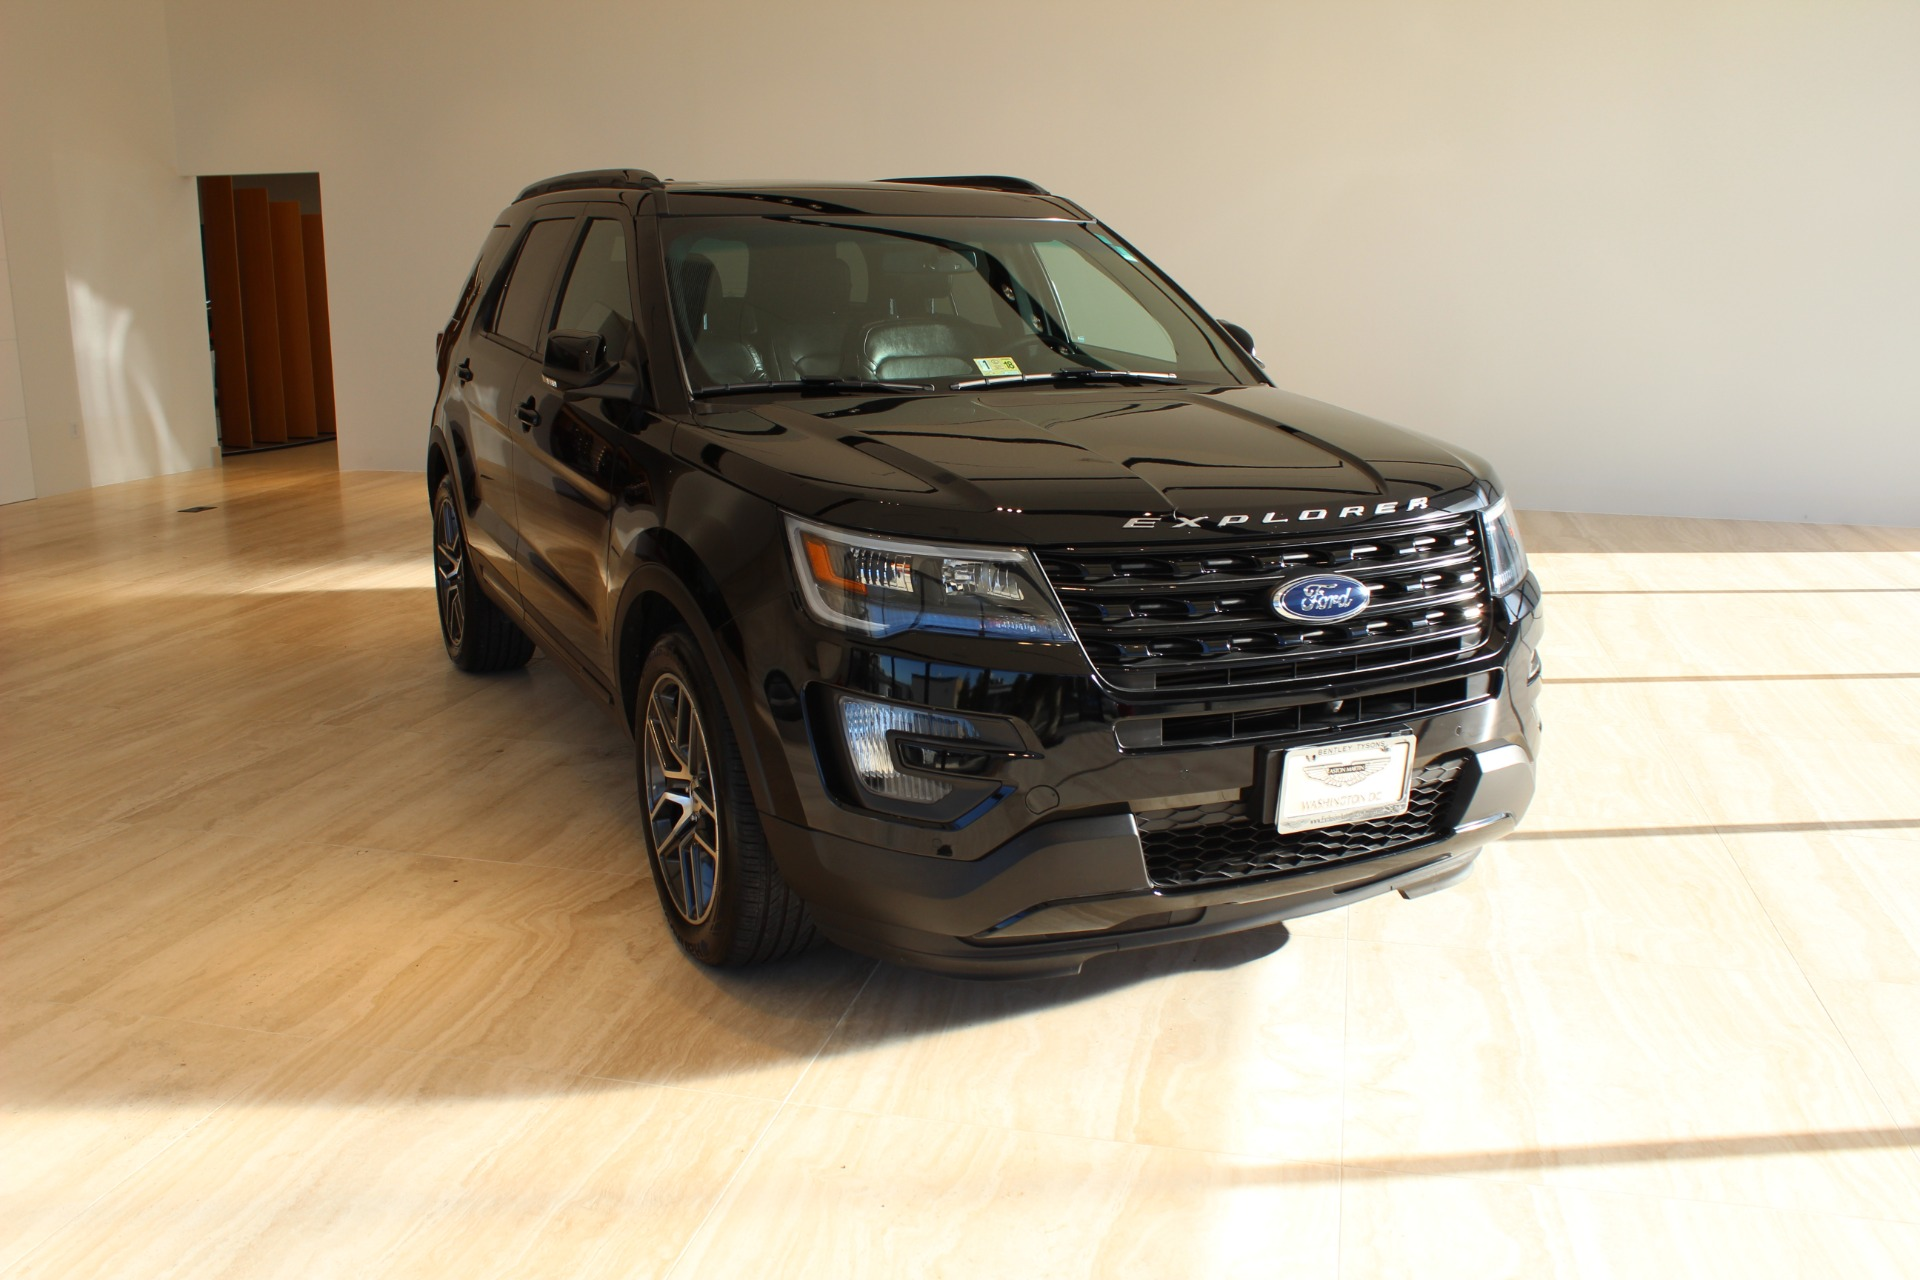 2016 Ford Explorer Sport For Sale >> 2016 Ford Explorer Sport Stock 7nc015990a For Sale Near